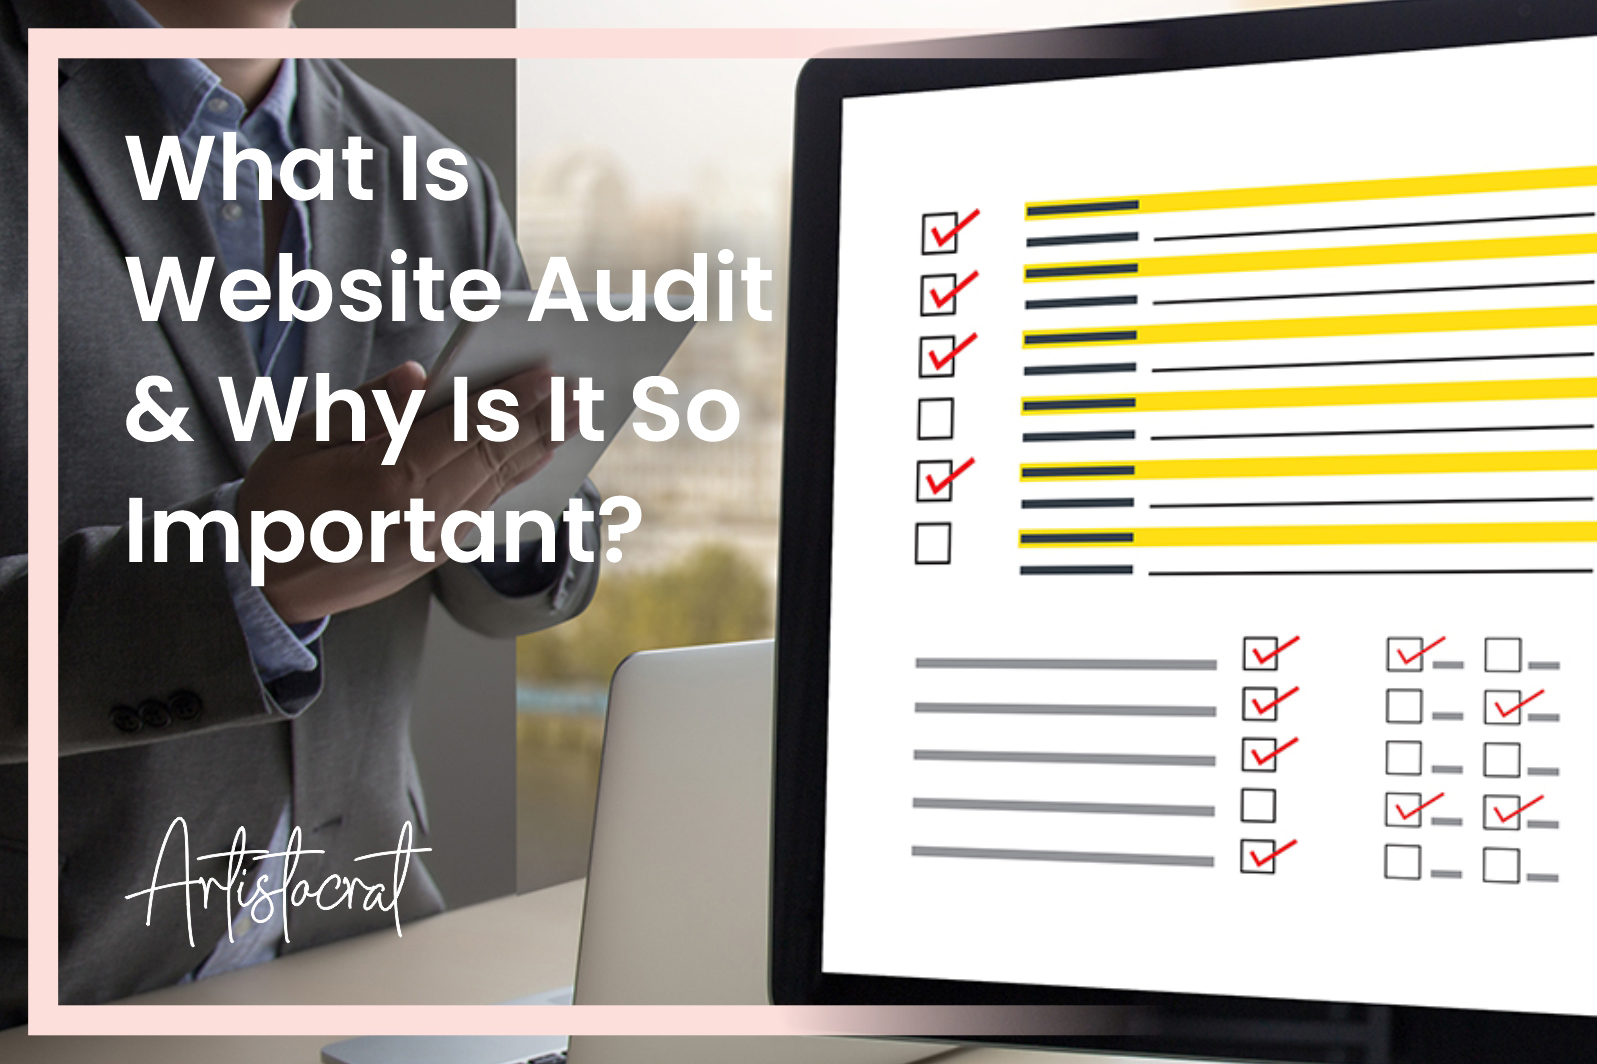 What-is-Website-Audit-Why-is-it-so-Important